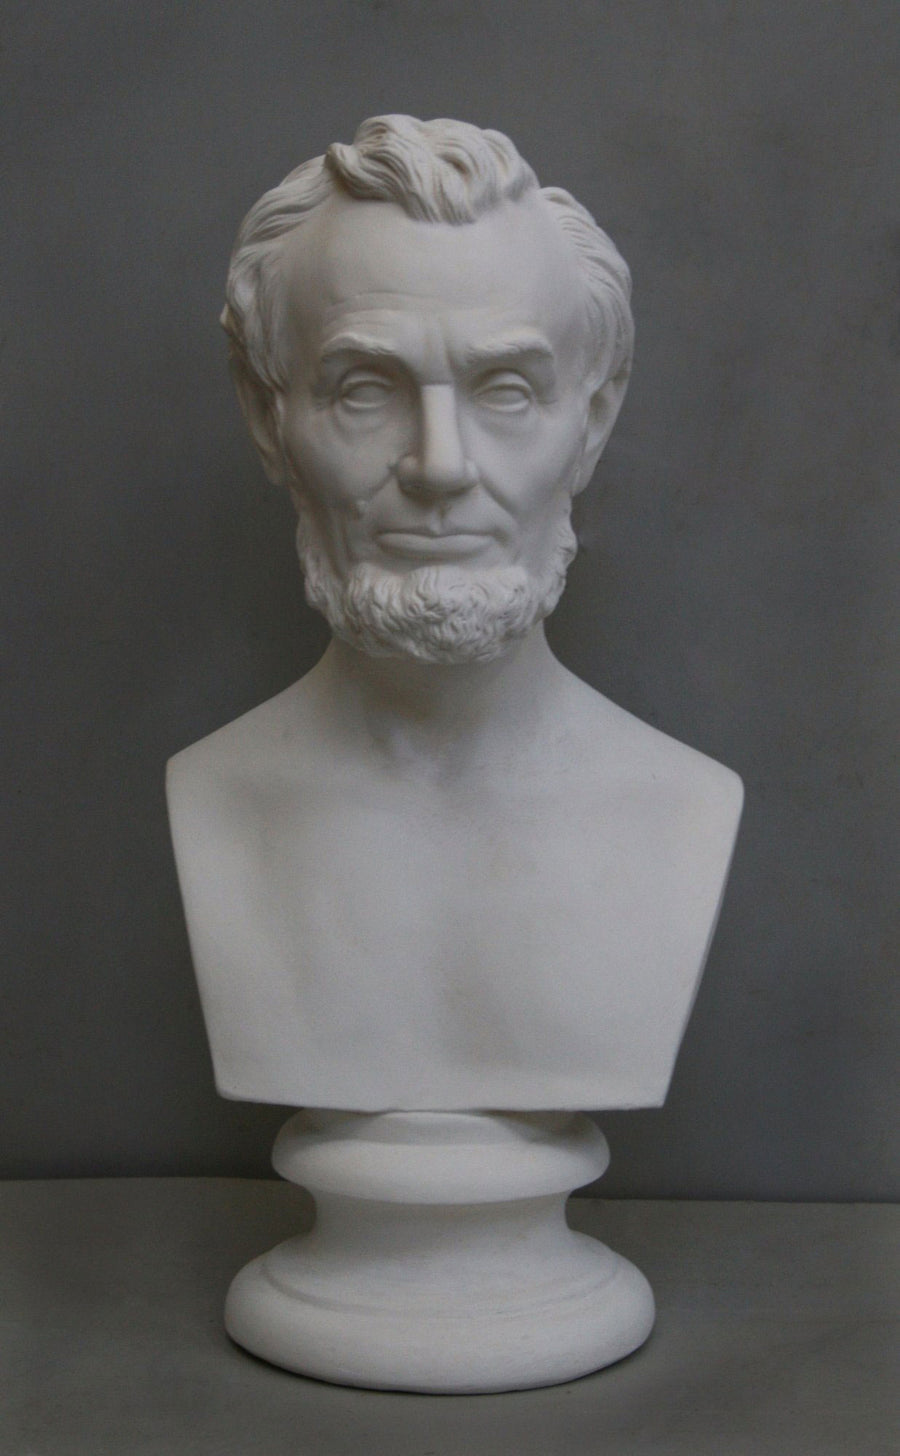 photo with gray background of plaster cast bust sculpture of man with beard, namely Lincoln